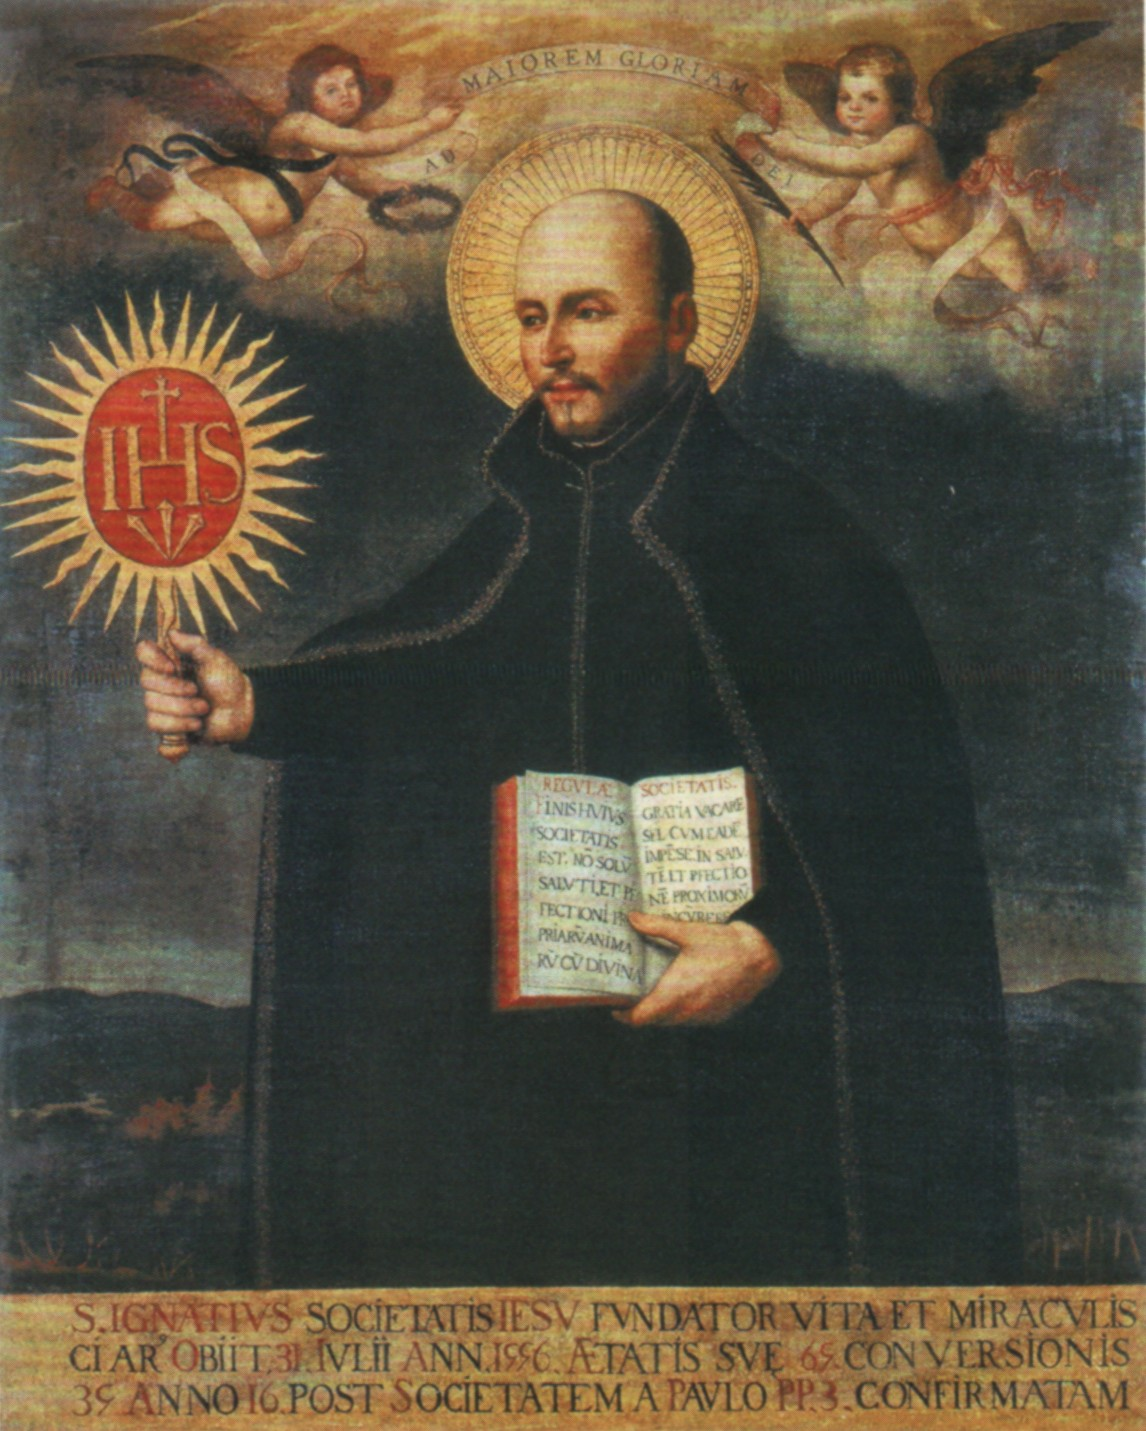 ignatius loyola St ignatius loyola 1491-1556 founder of the society of jesus it was in early june 1521 that soldiers carried the wounded iñigo de loyola to his ancestral home to recuperate from wounds.